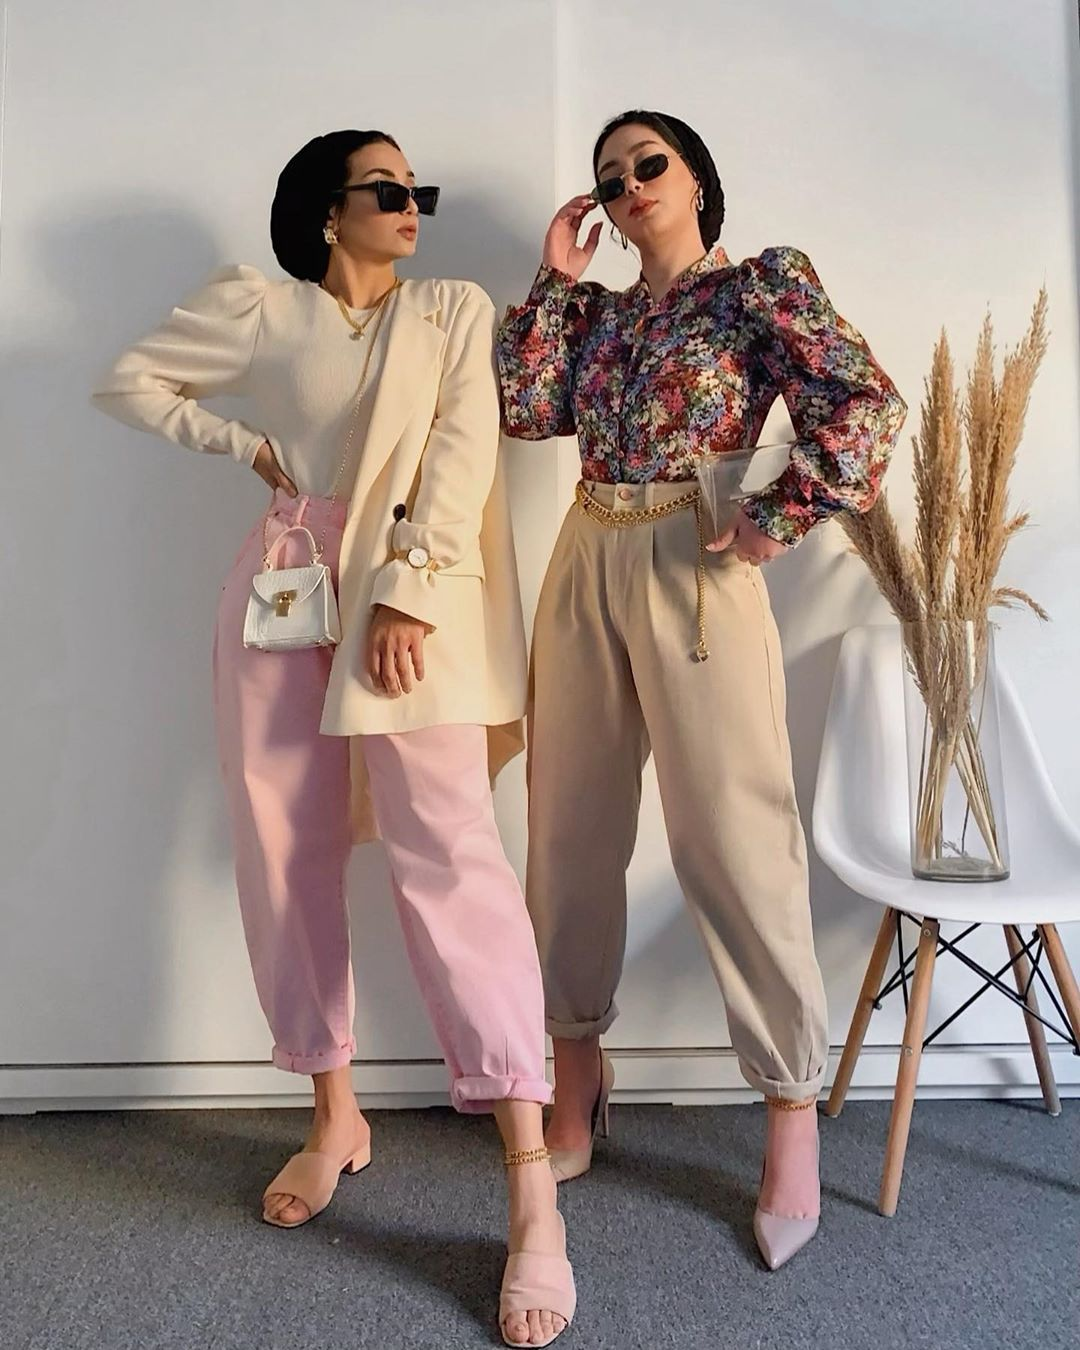 "Photo of KD SISTERS STYLE on Instagram: ""Looking for colorful clothes helps us brighten our days in quarantine 🤍💗 ________________________________________  #kdsistersstyle #sisters…"""